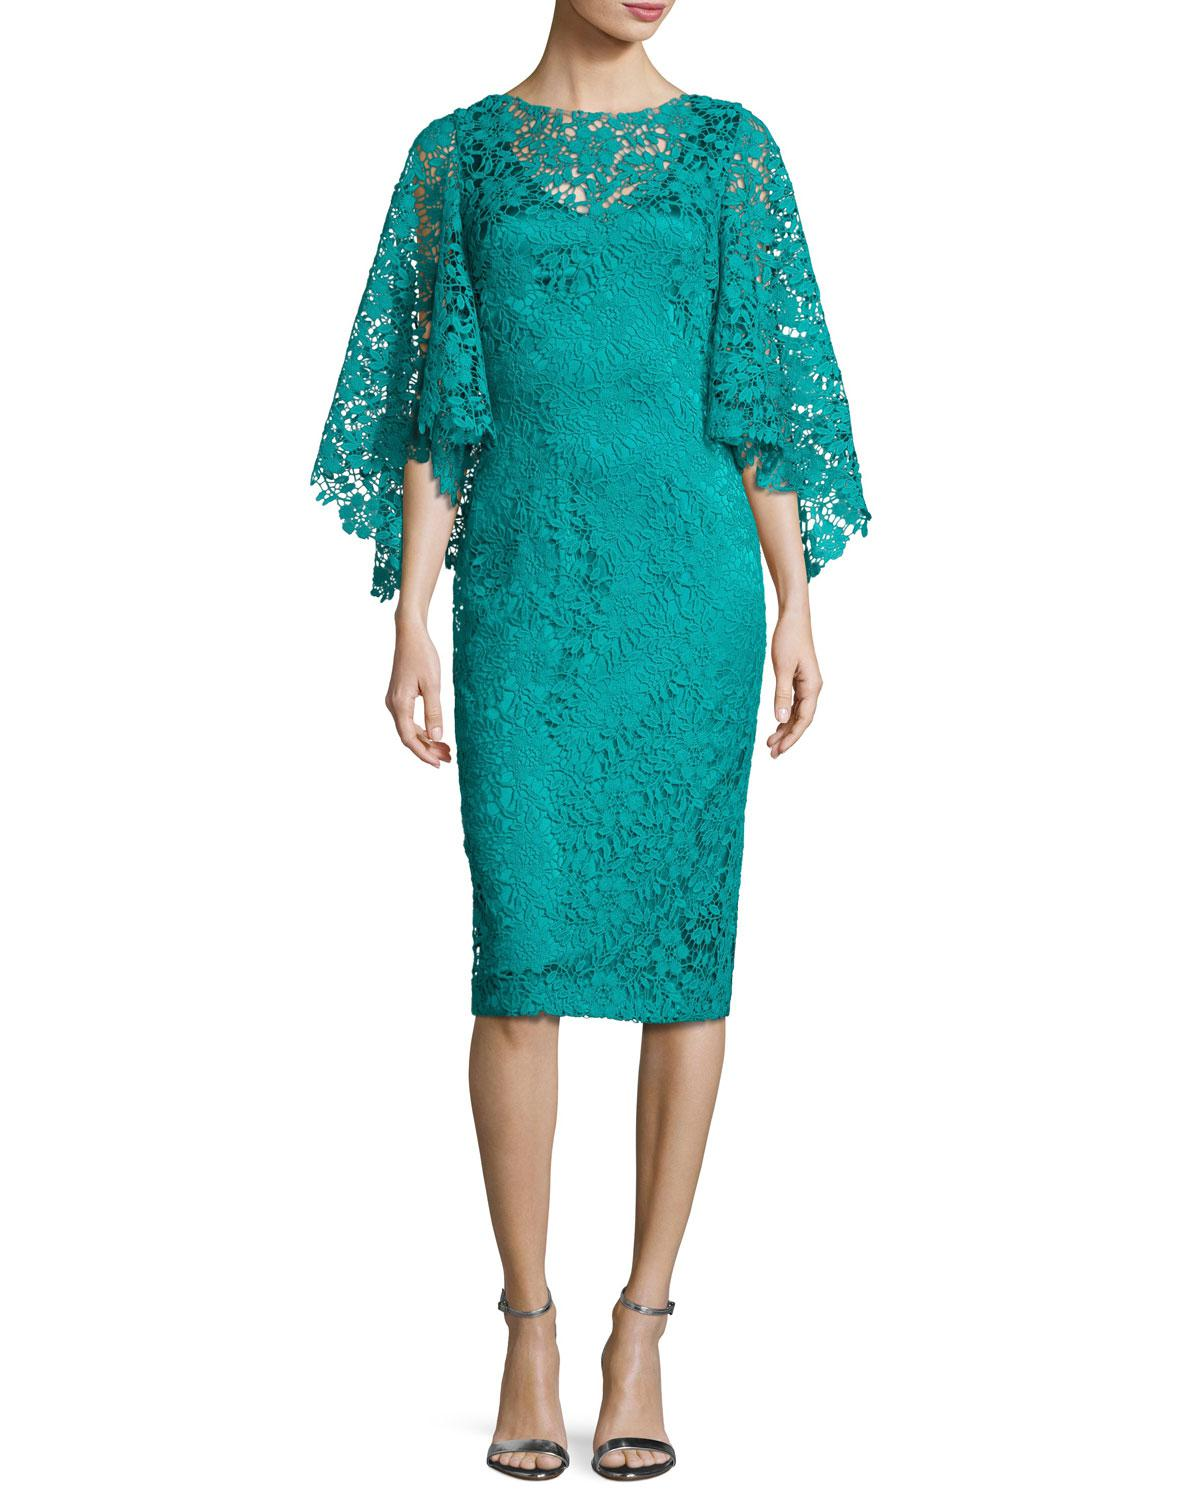 Lyst - Theia Bell-sleeve Floral Lace Cocktail Dress in Blue